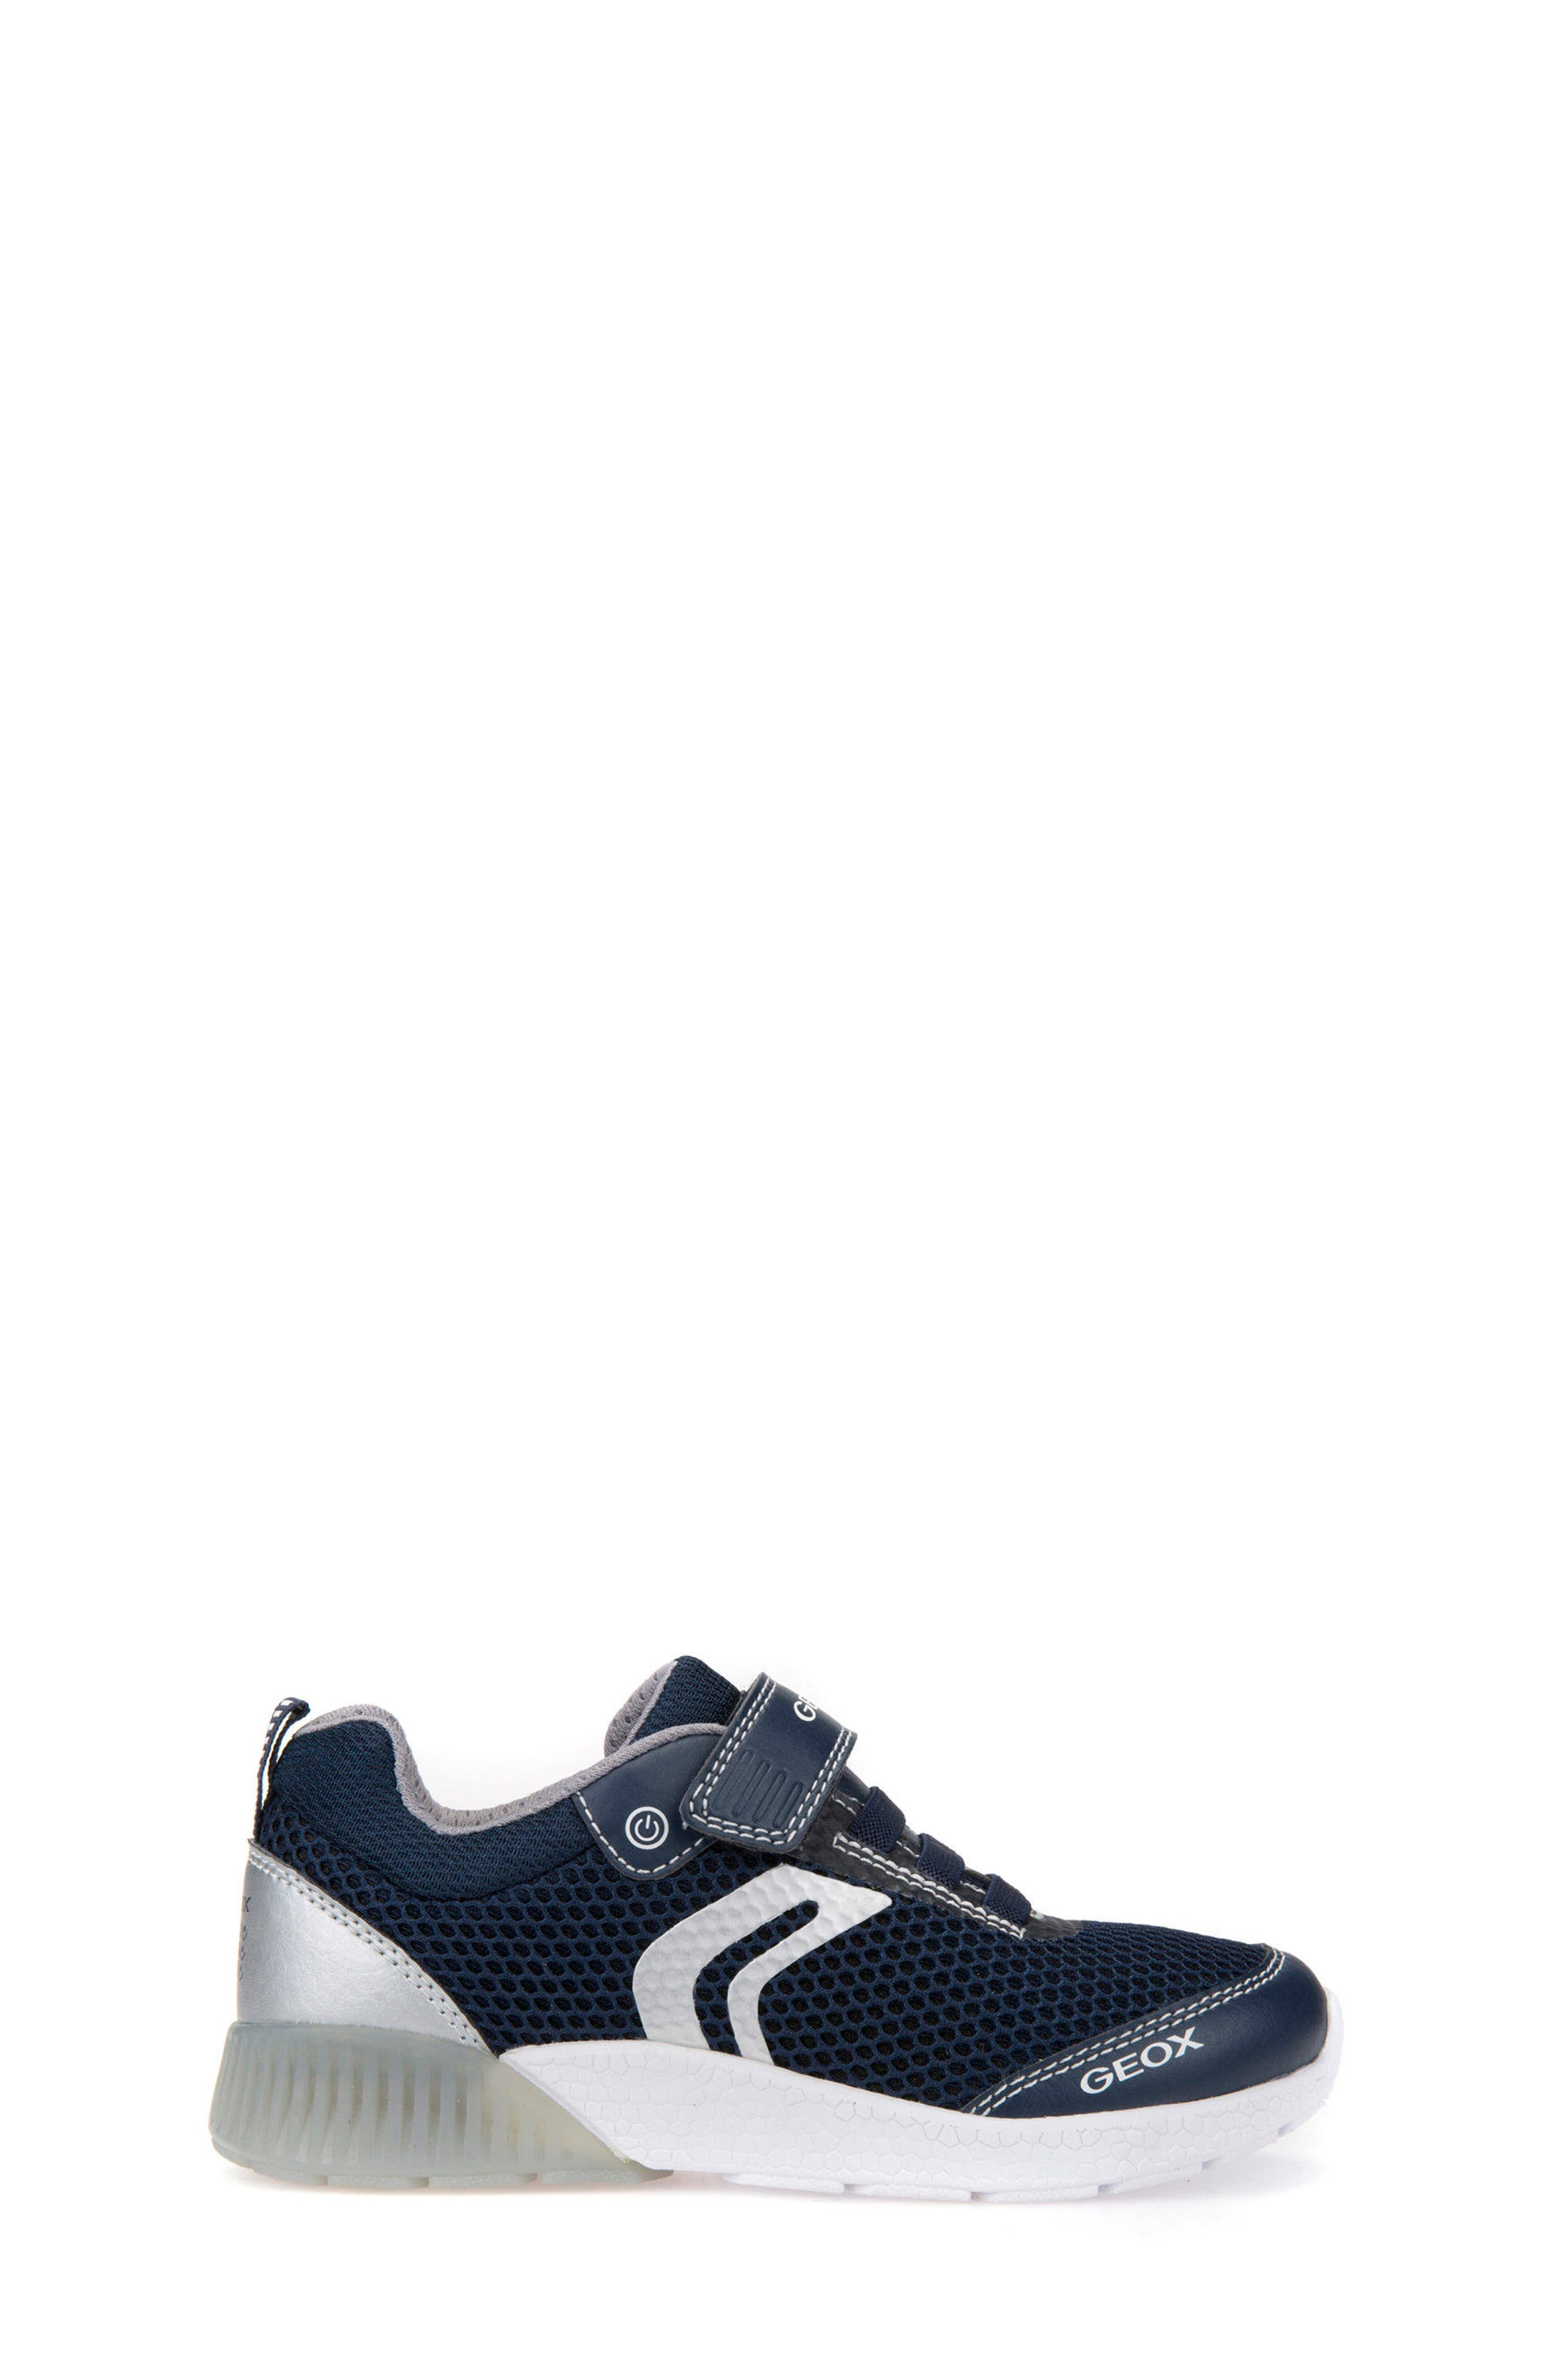 Sveth Light-Up Sneaker,                             Alternate thumbnail 3, color,                             Navy/ Silver